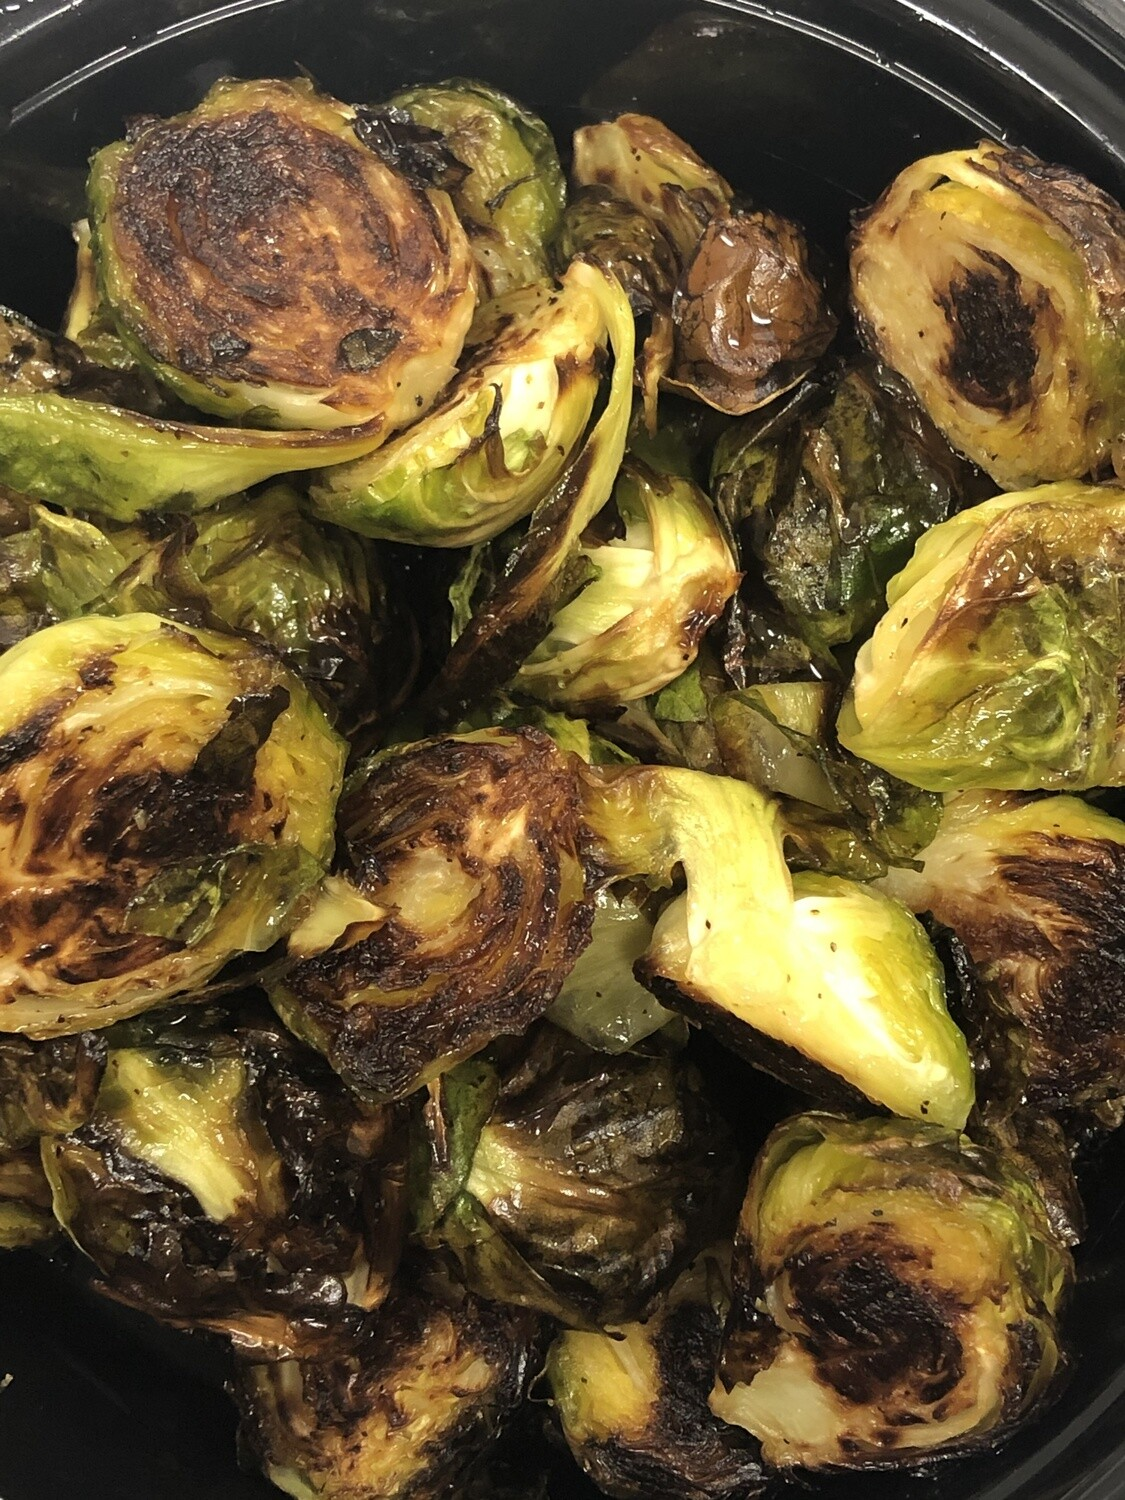 Glazed Brussel Sprouts Family Side - 16oz roasted brussel sprouts tossed with honey, cider, salt and pepper. Family of 4.